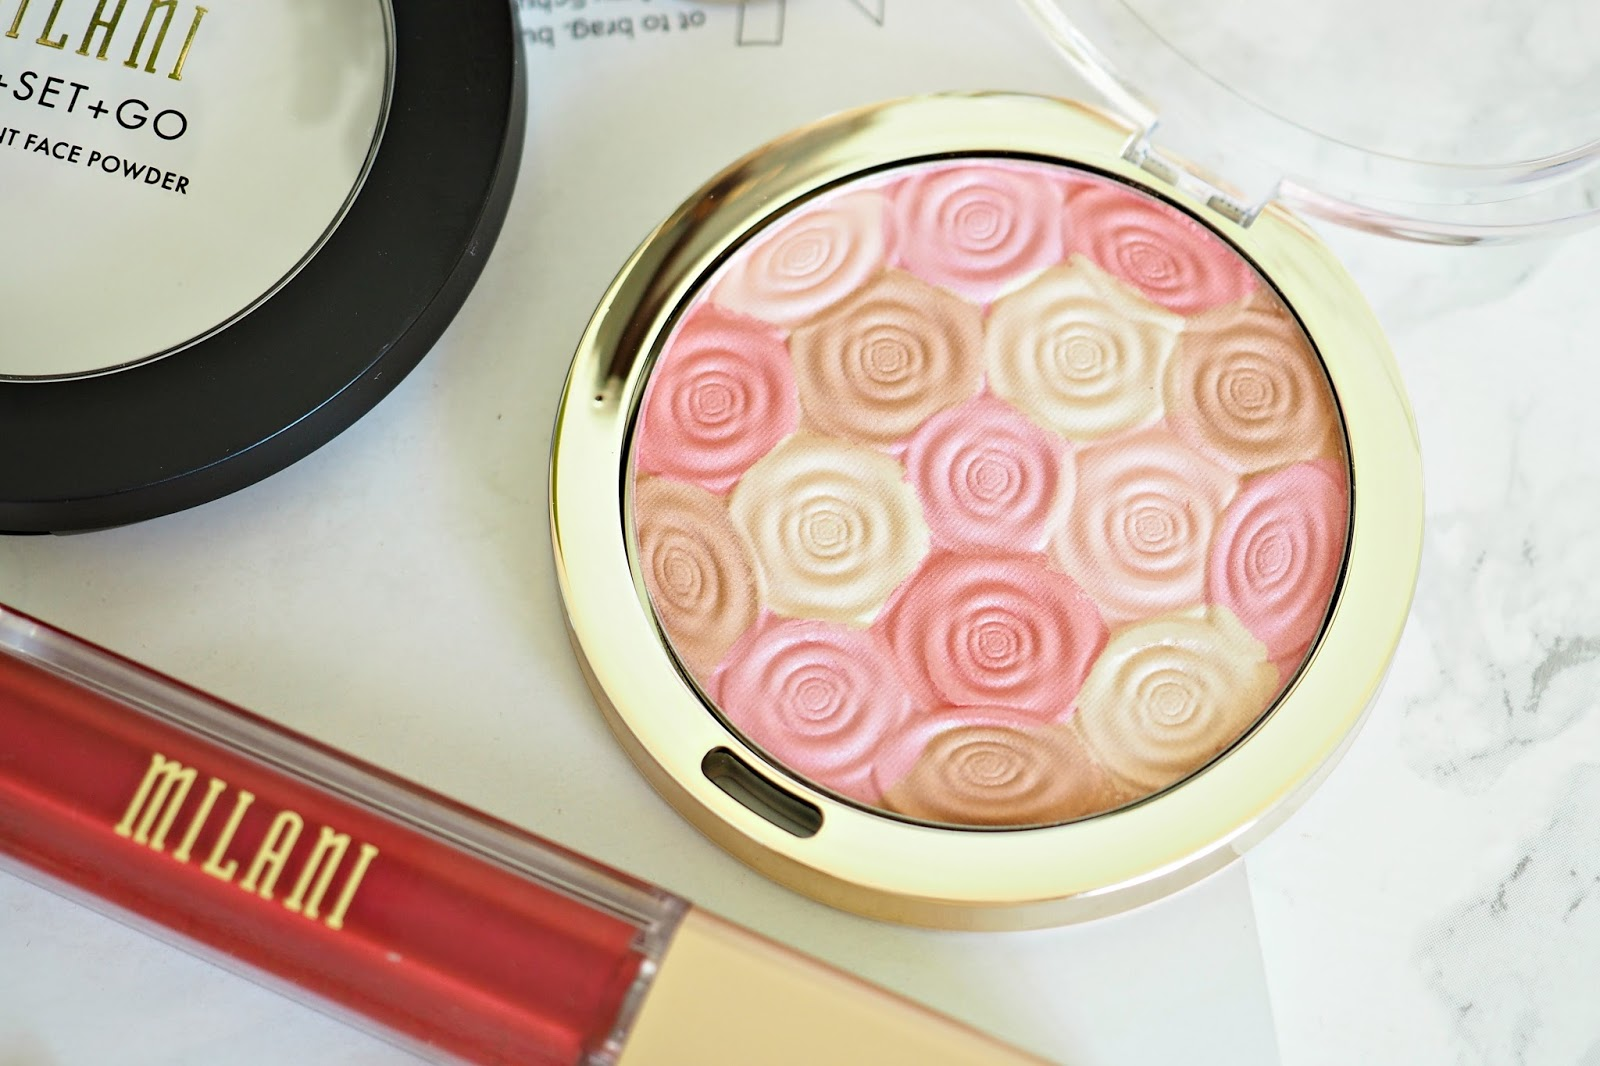 Milani Illuminating Face Powder - shade 03